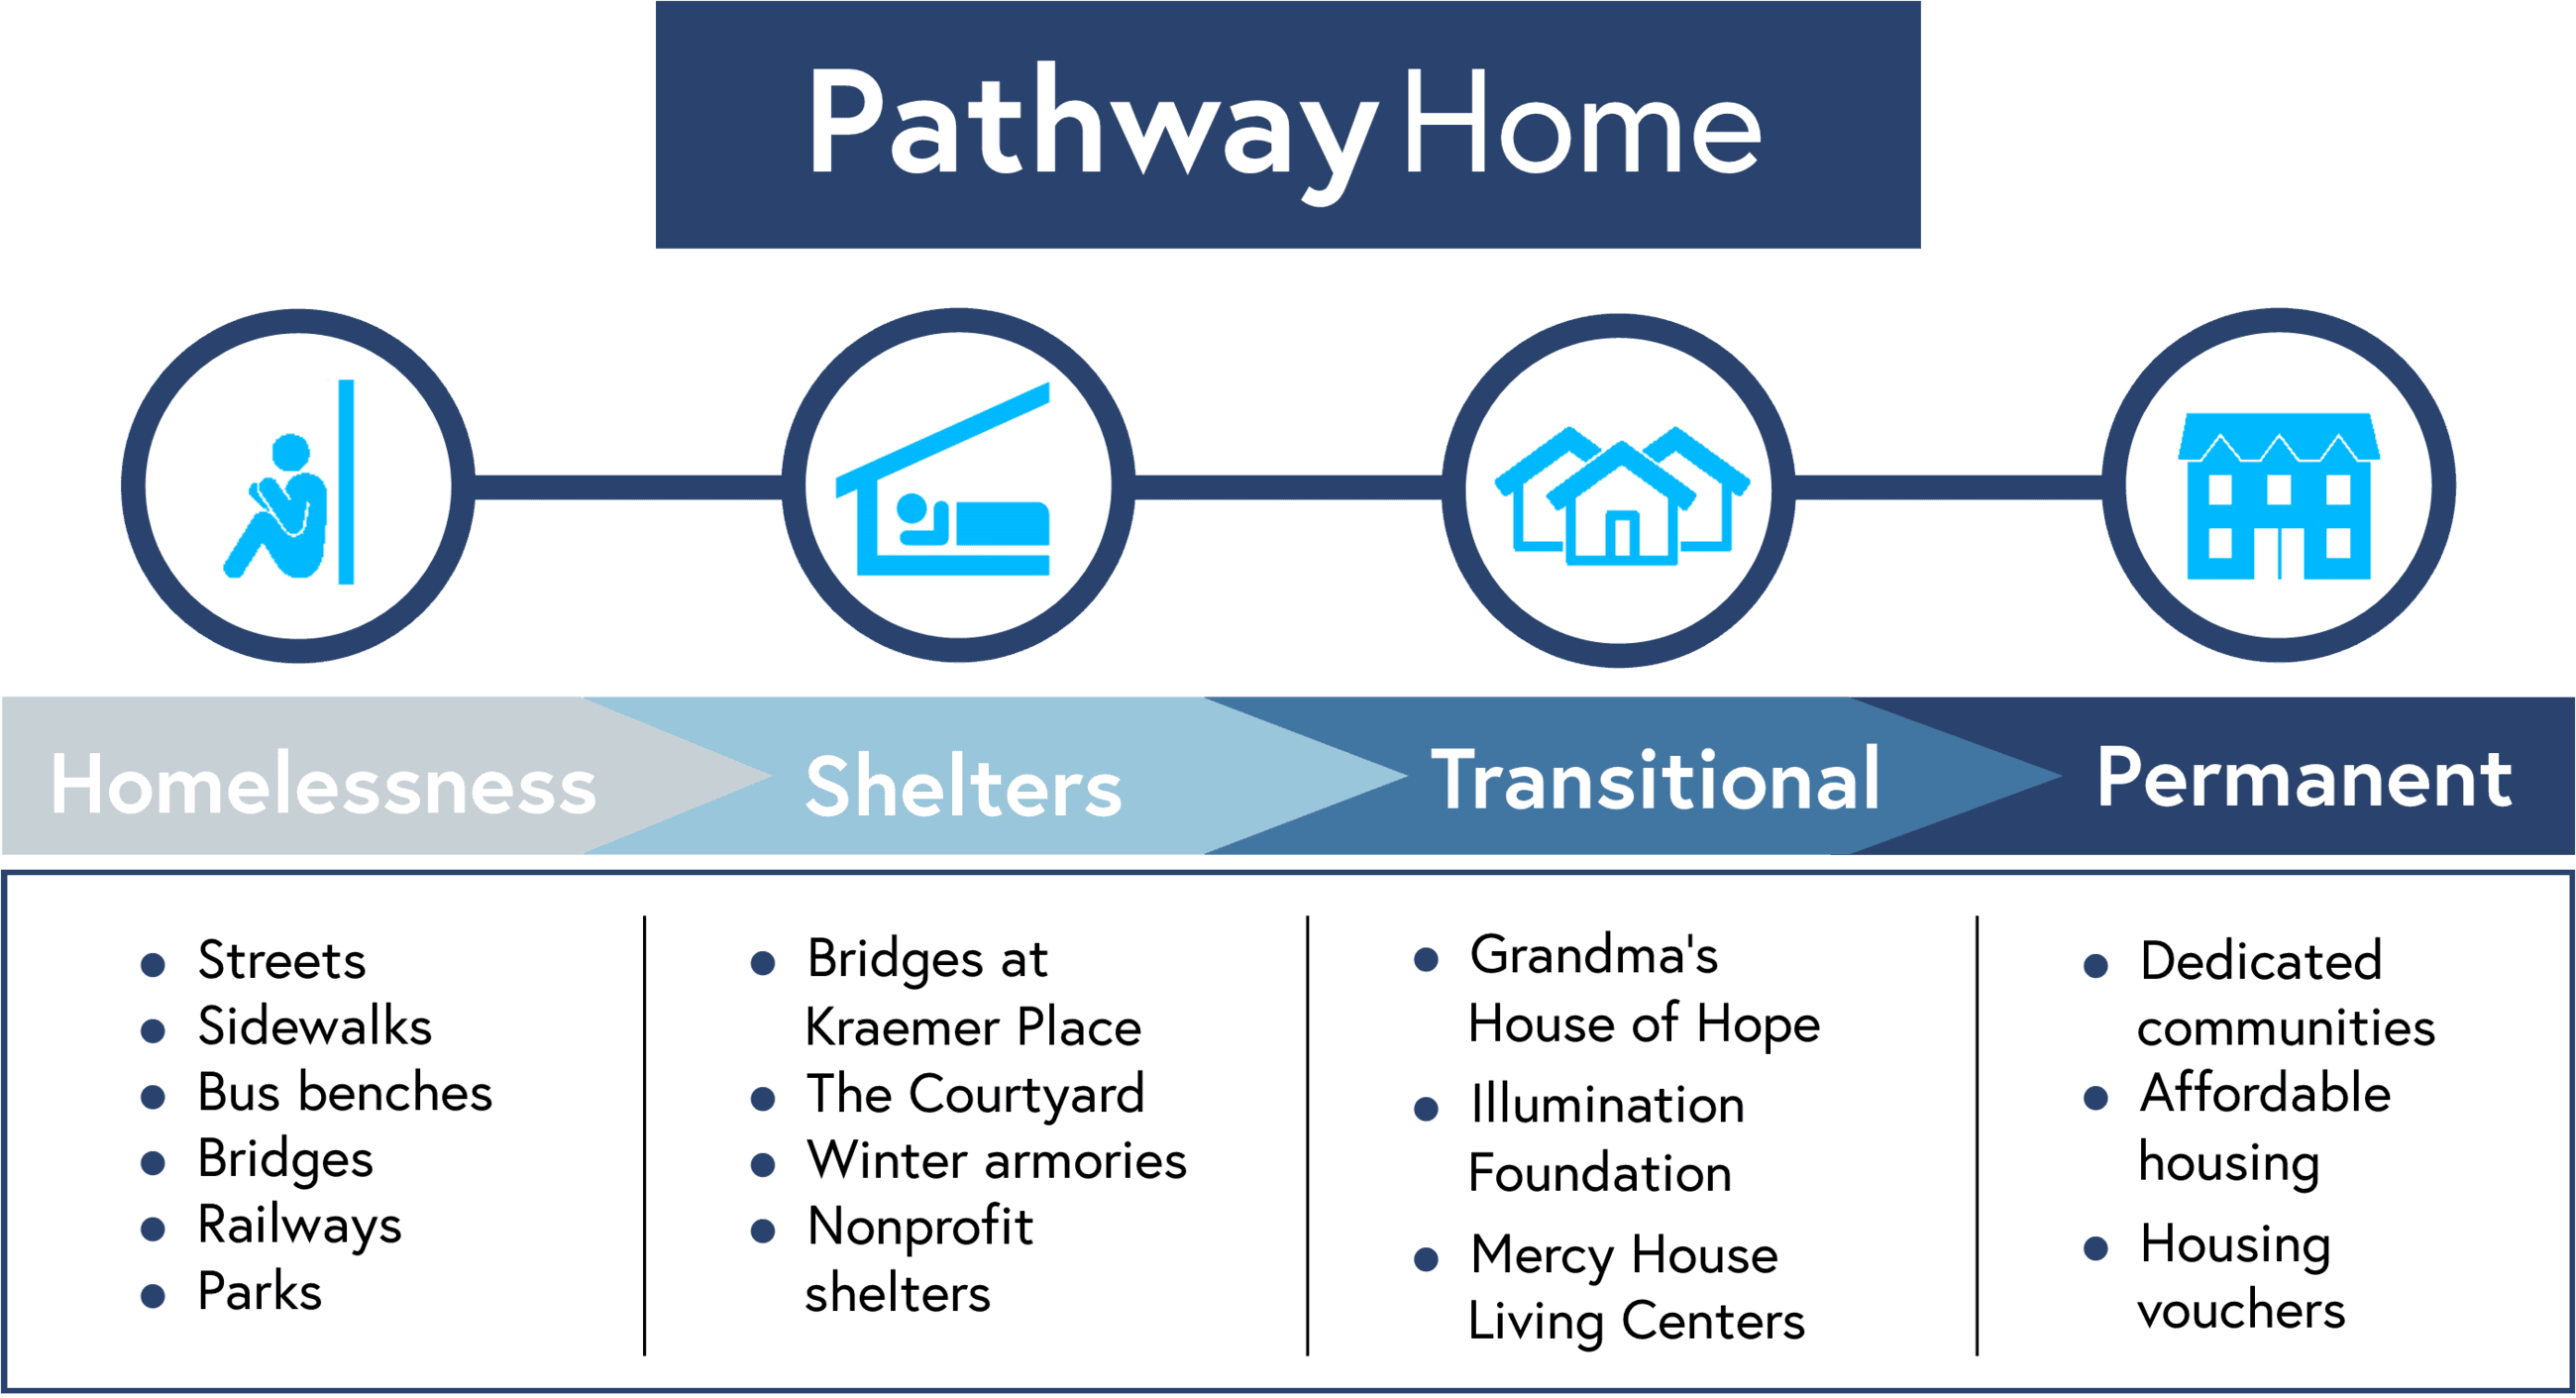 Pathway Home